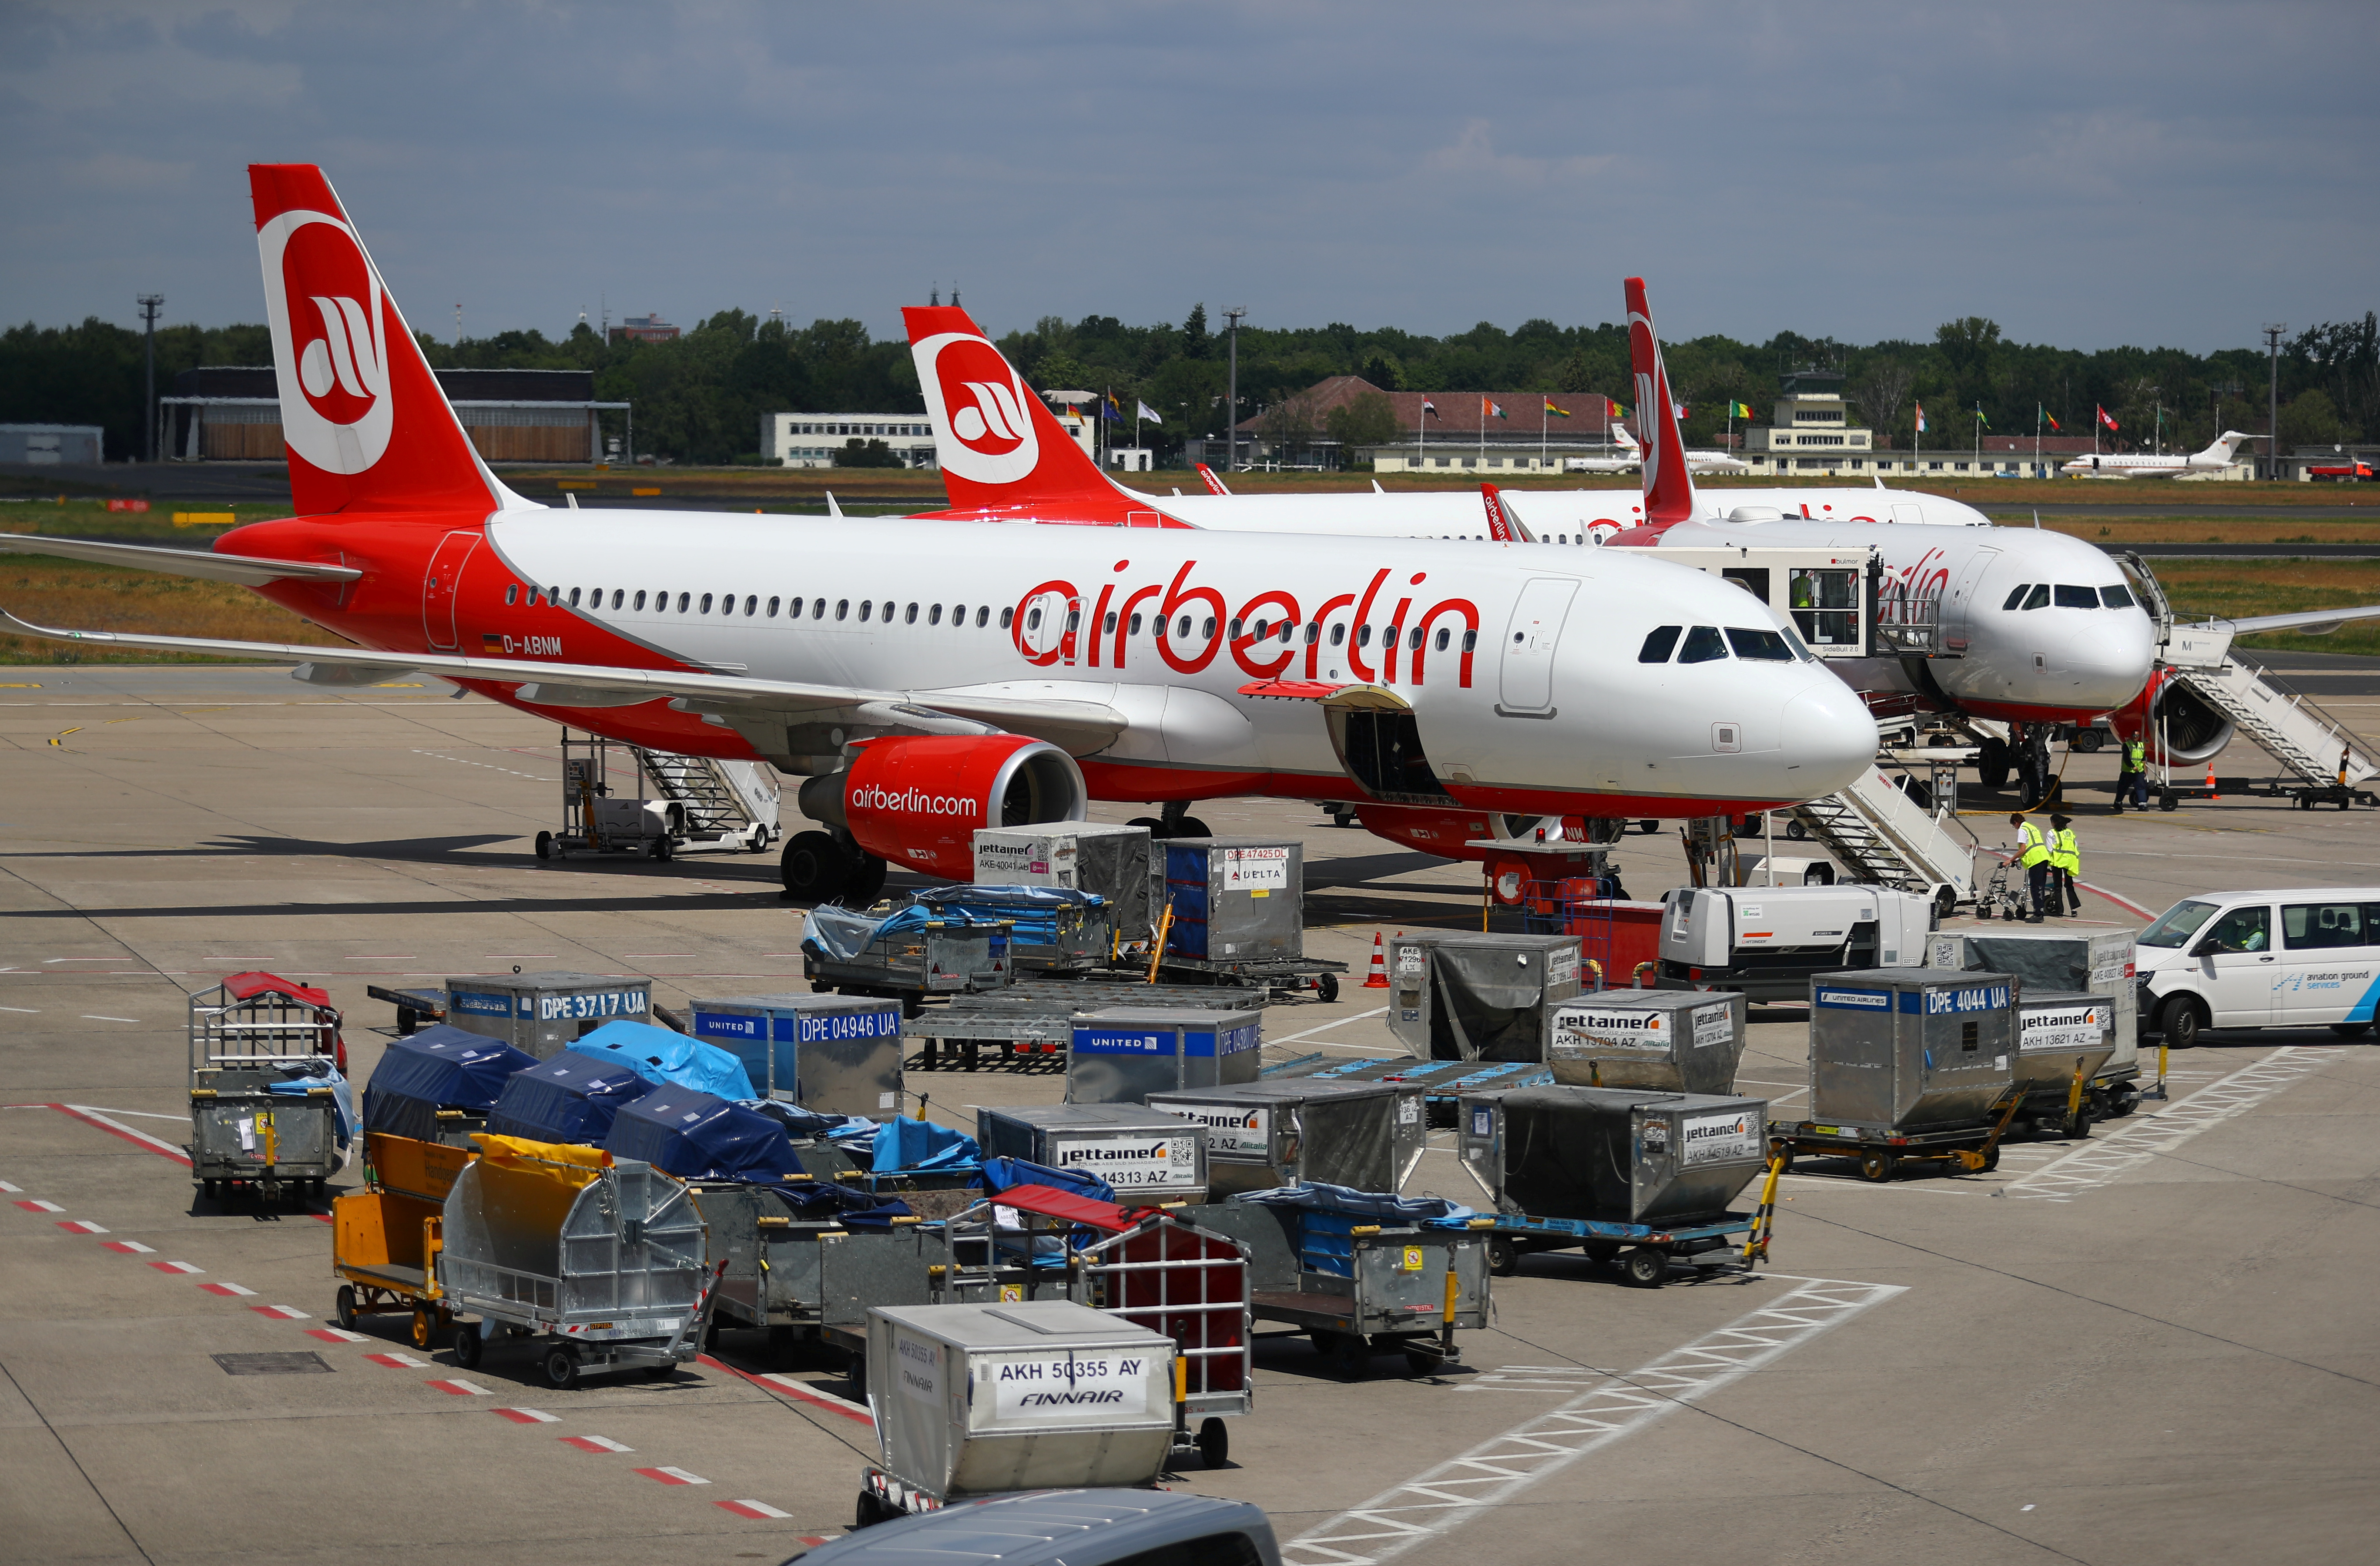 German carrier Air Berlin aircrafts are pictured at Tegel airport in Berlin, Germany, June 14, 2017. File Photo - RTS1BUYP